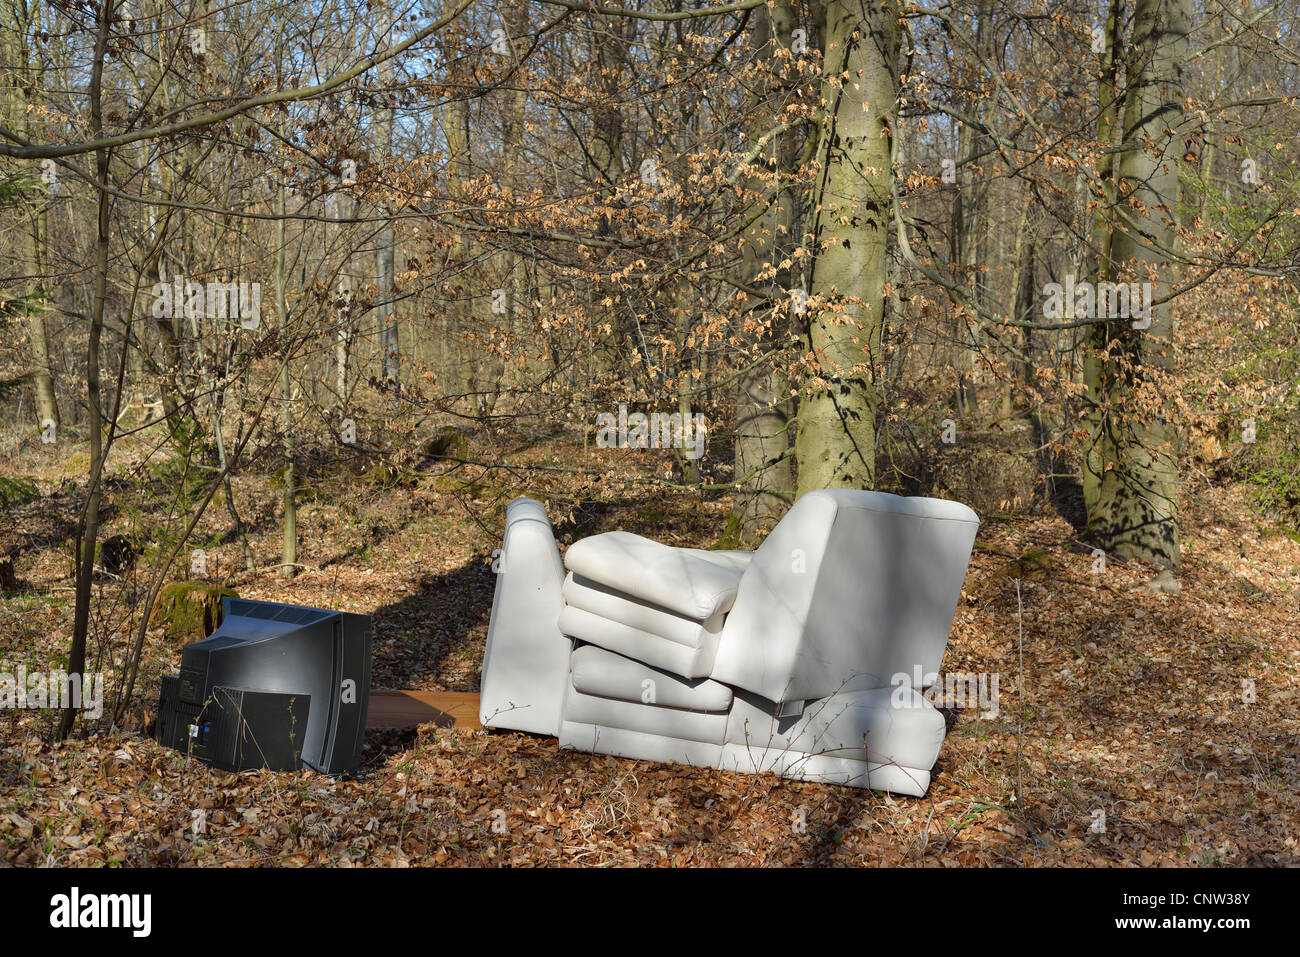 Illegal rubbish dump in the forest - a white couch and a black TV Set standing in the middle of the trees - Stock Image